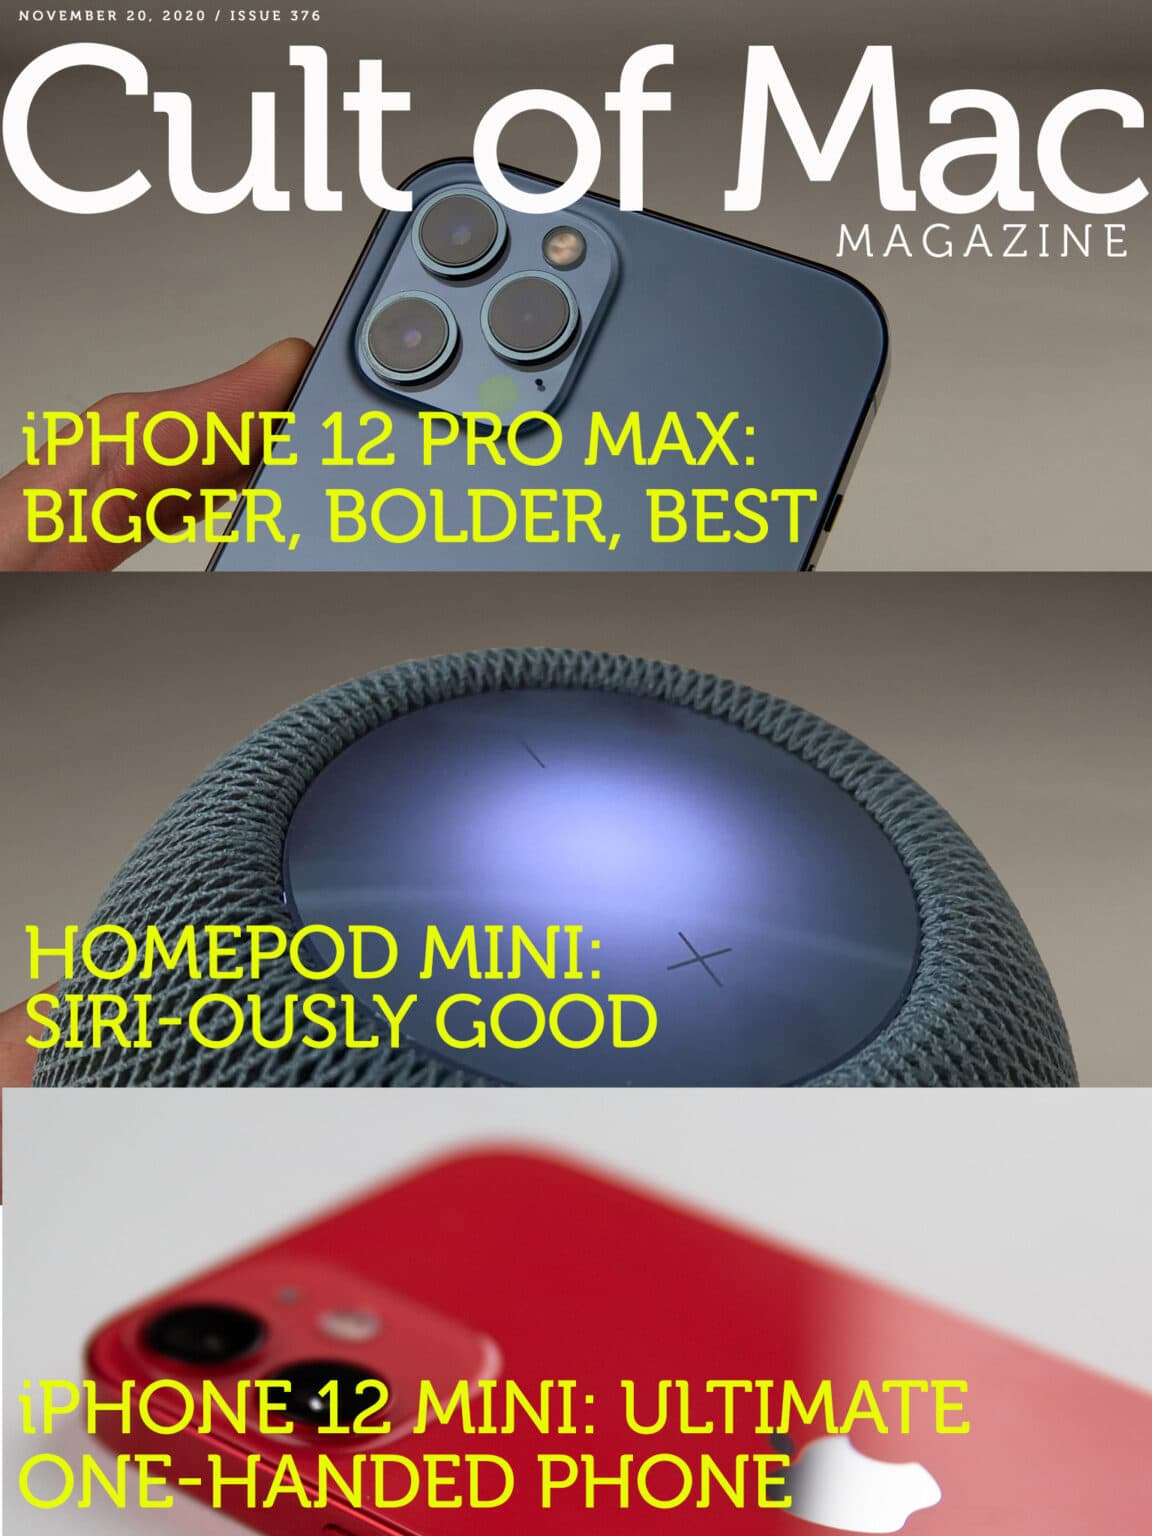 iPhone 12 Pro Max, iPhone 12 mini and HomePod mini reviews: So many Apple products, so little time ...